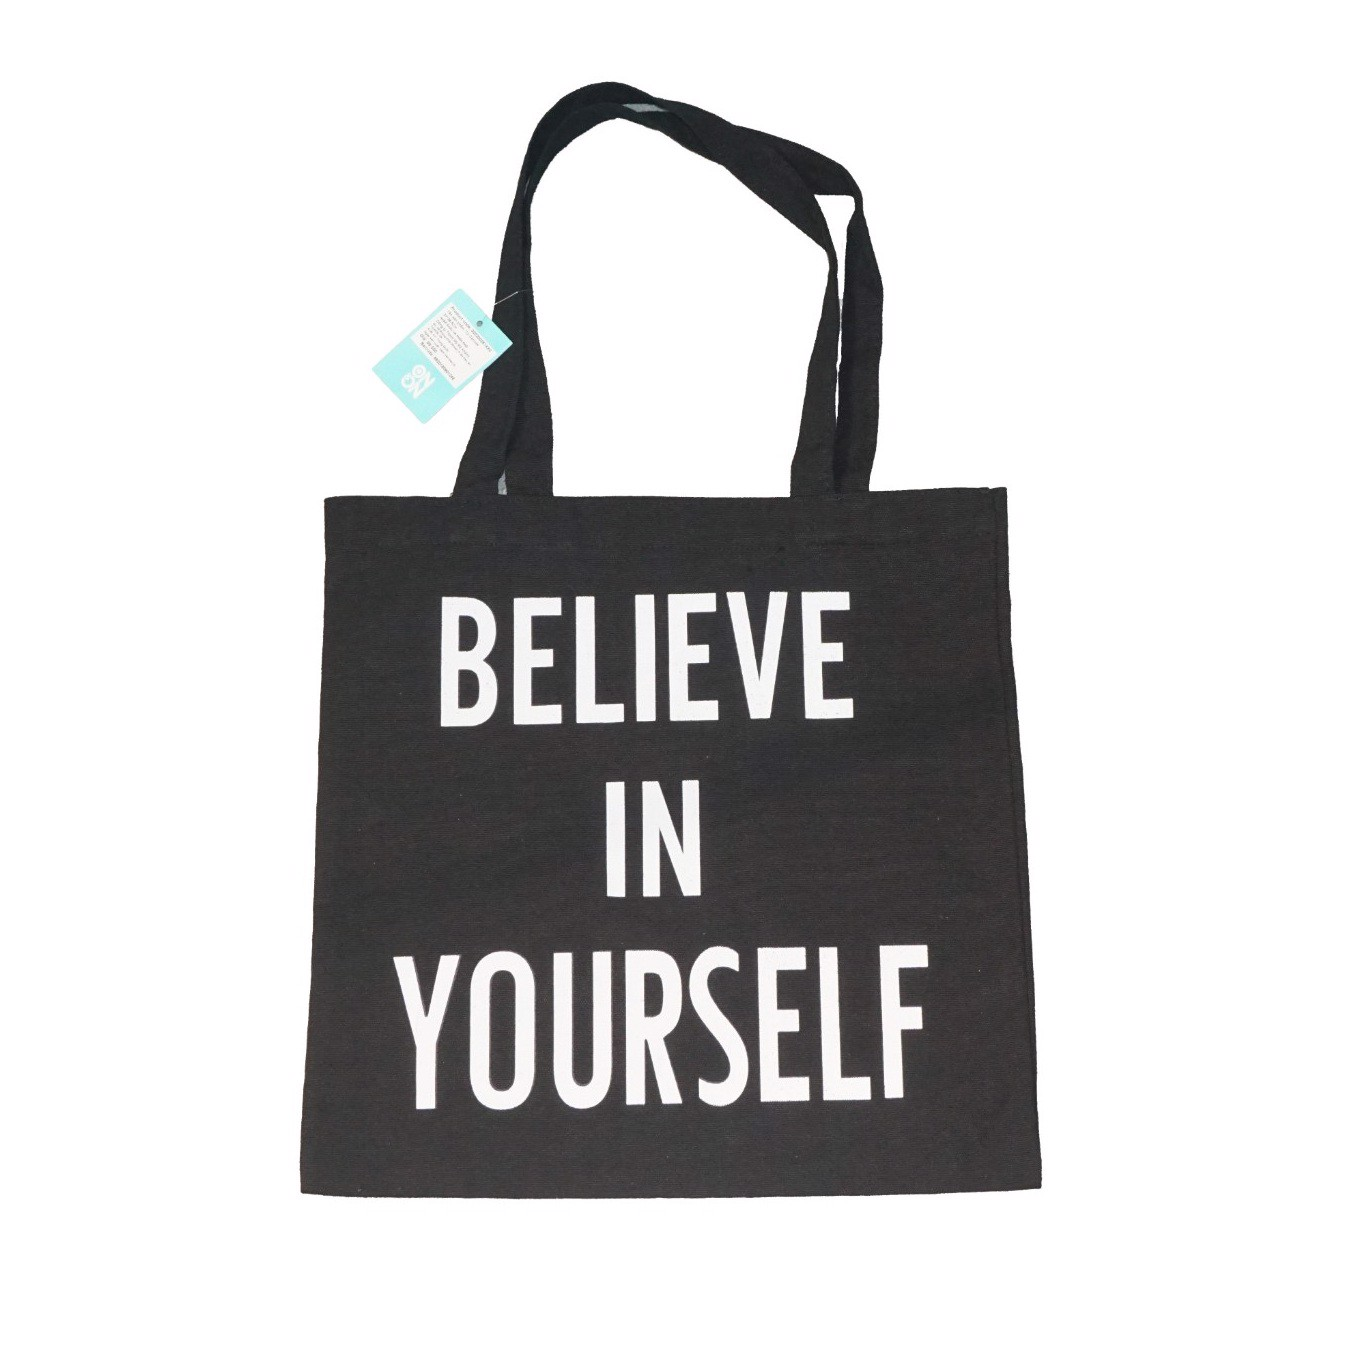 Túi canvas Believe In Your Self Đen- 37*38.5cm ON ON O0202002C35